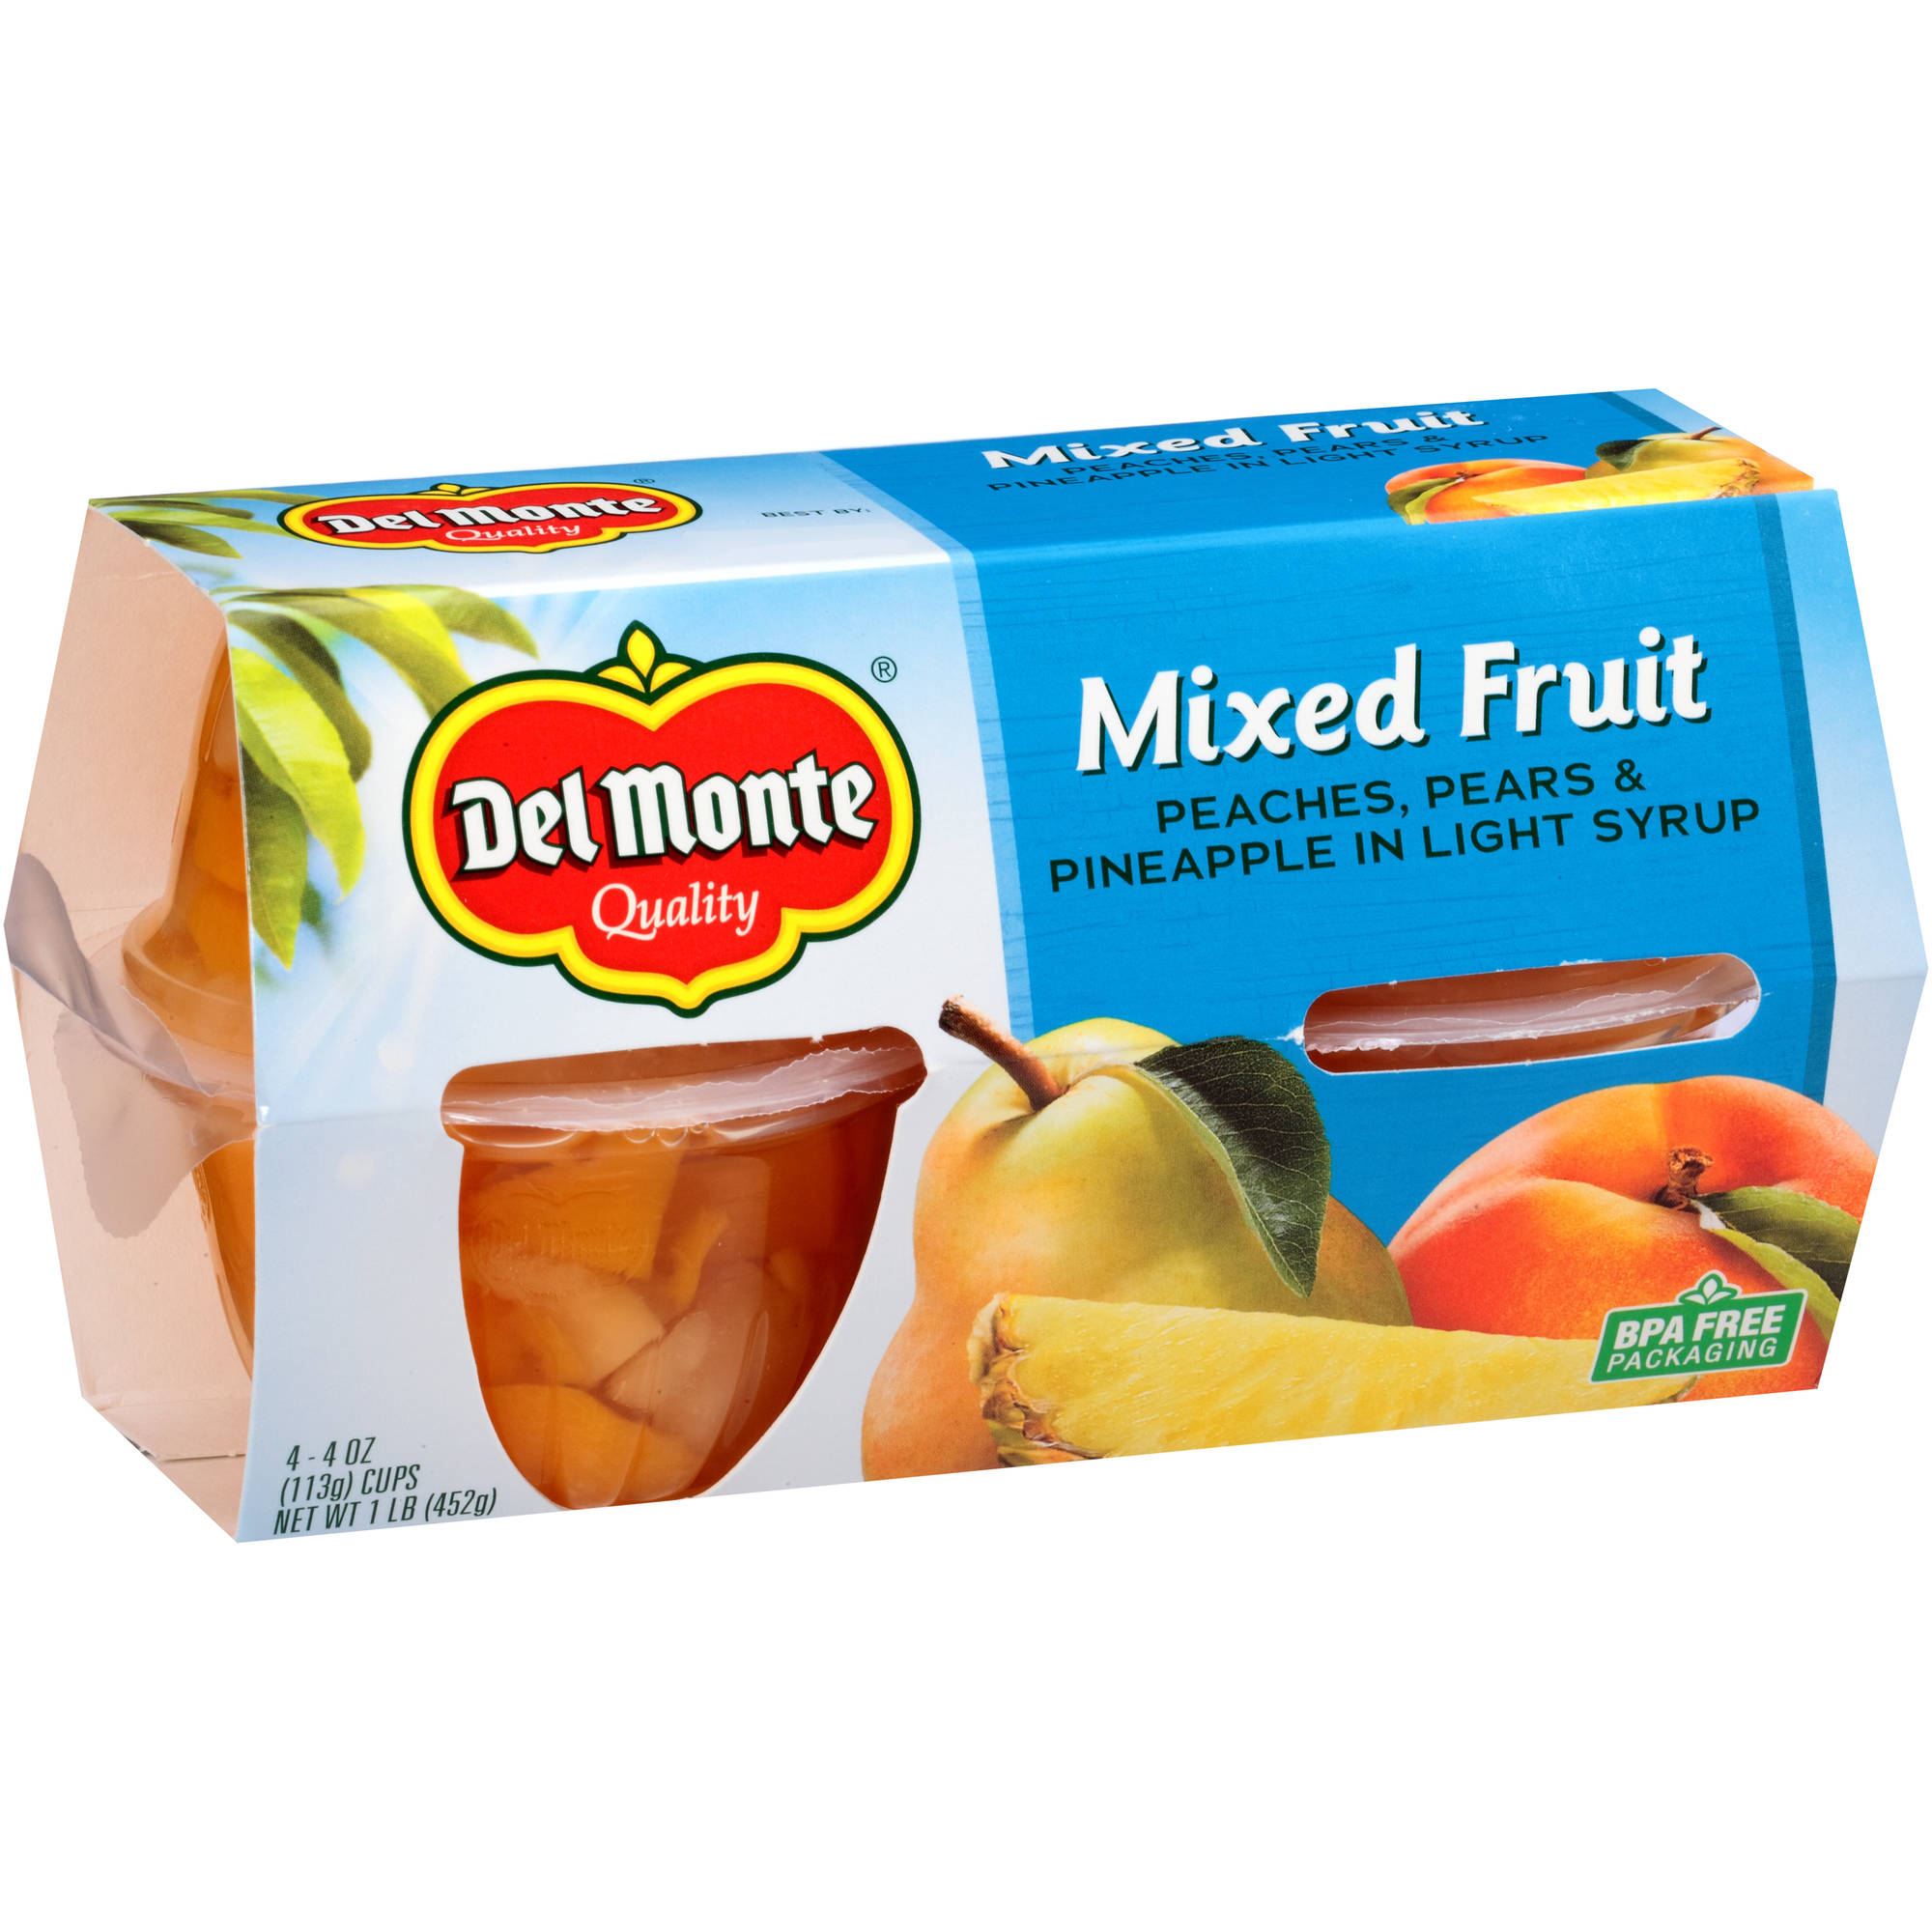 Del Monte Mixed Fruit Peaches, Pears & Pineapple in Light Syrup, 4 oz, 4 count